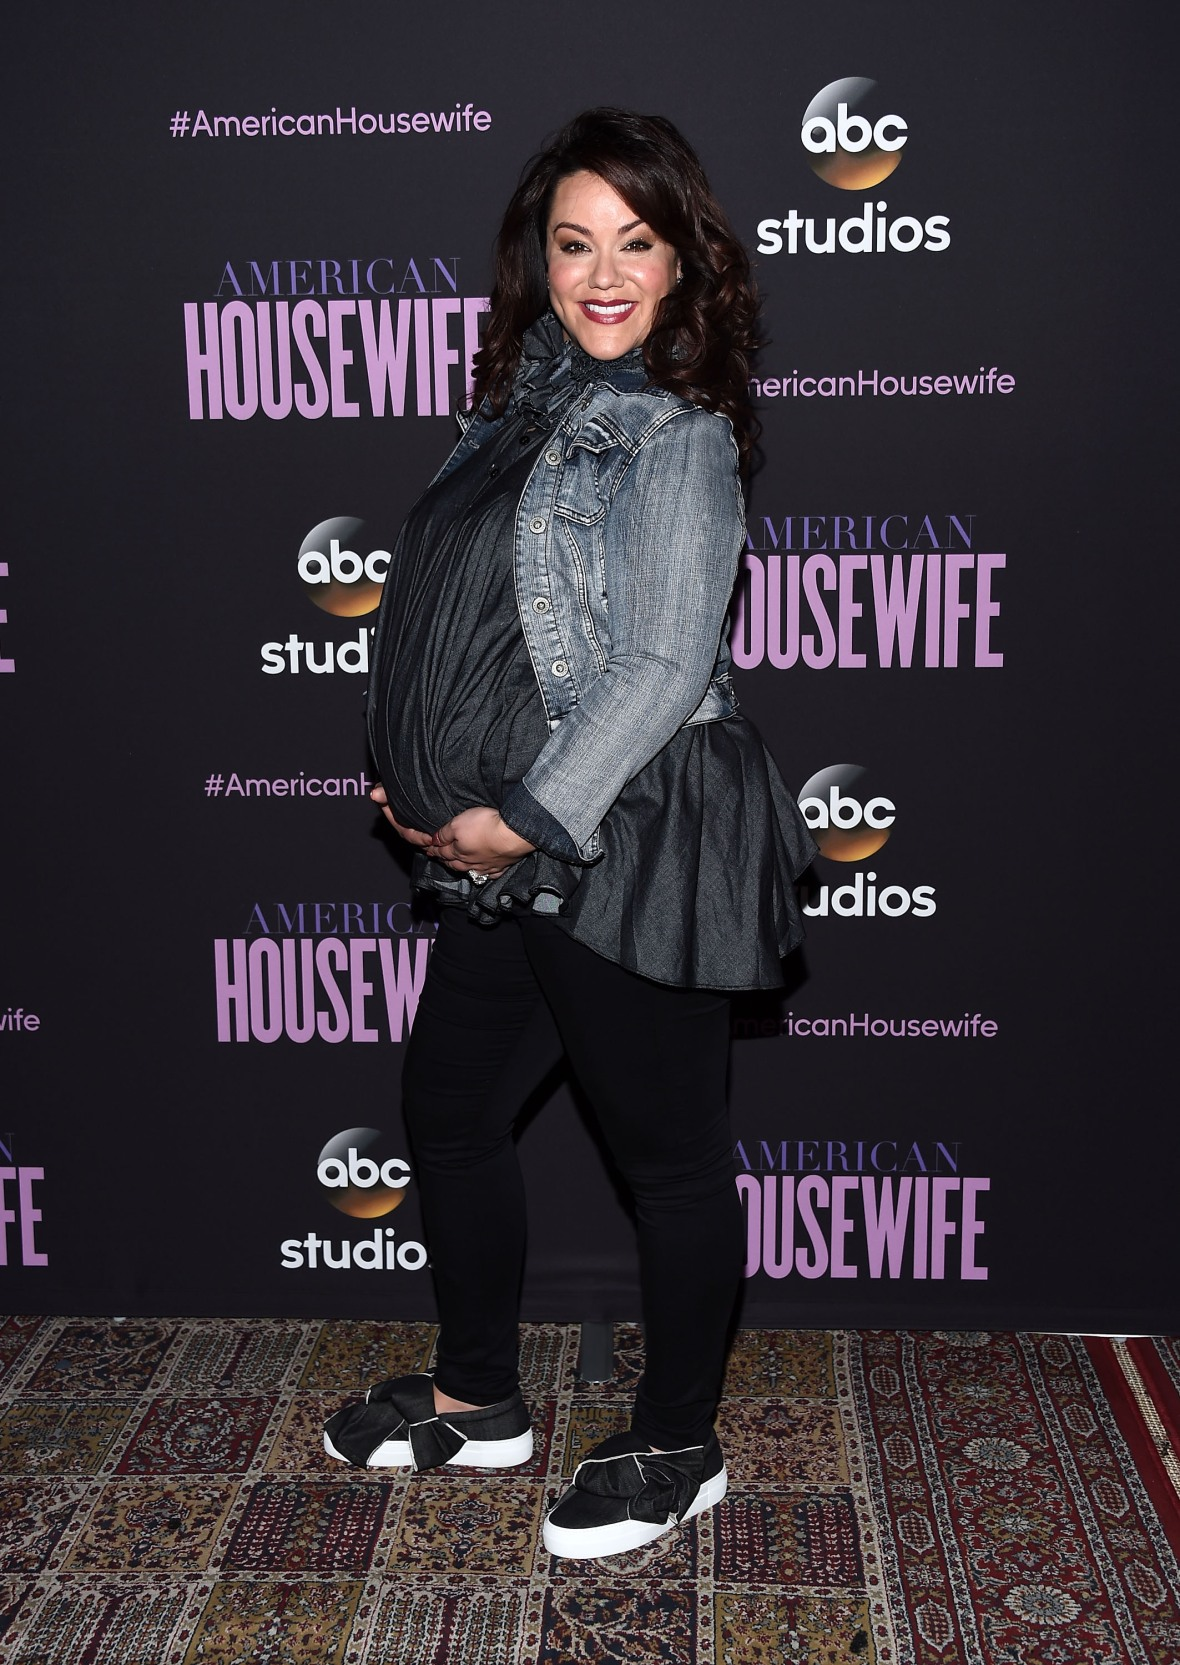 katy mixon pregnant getty images